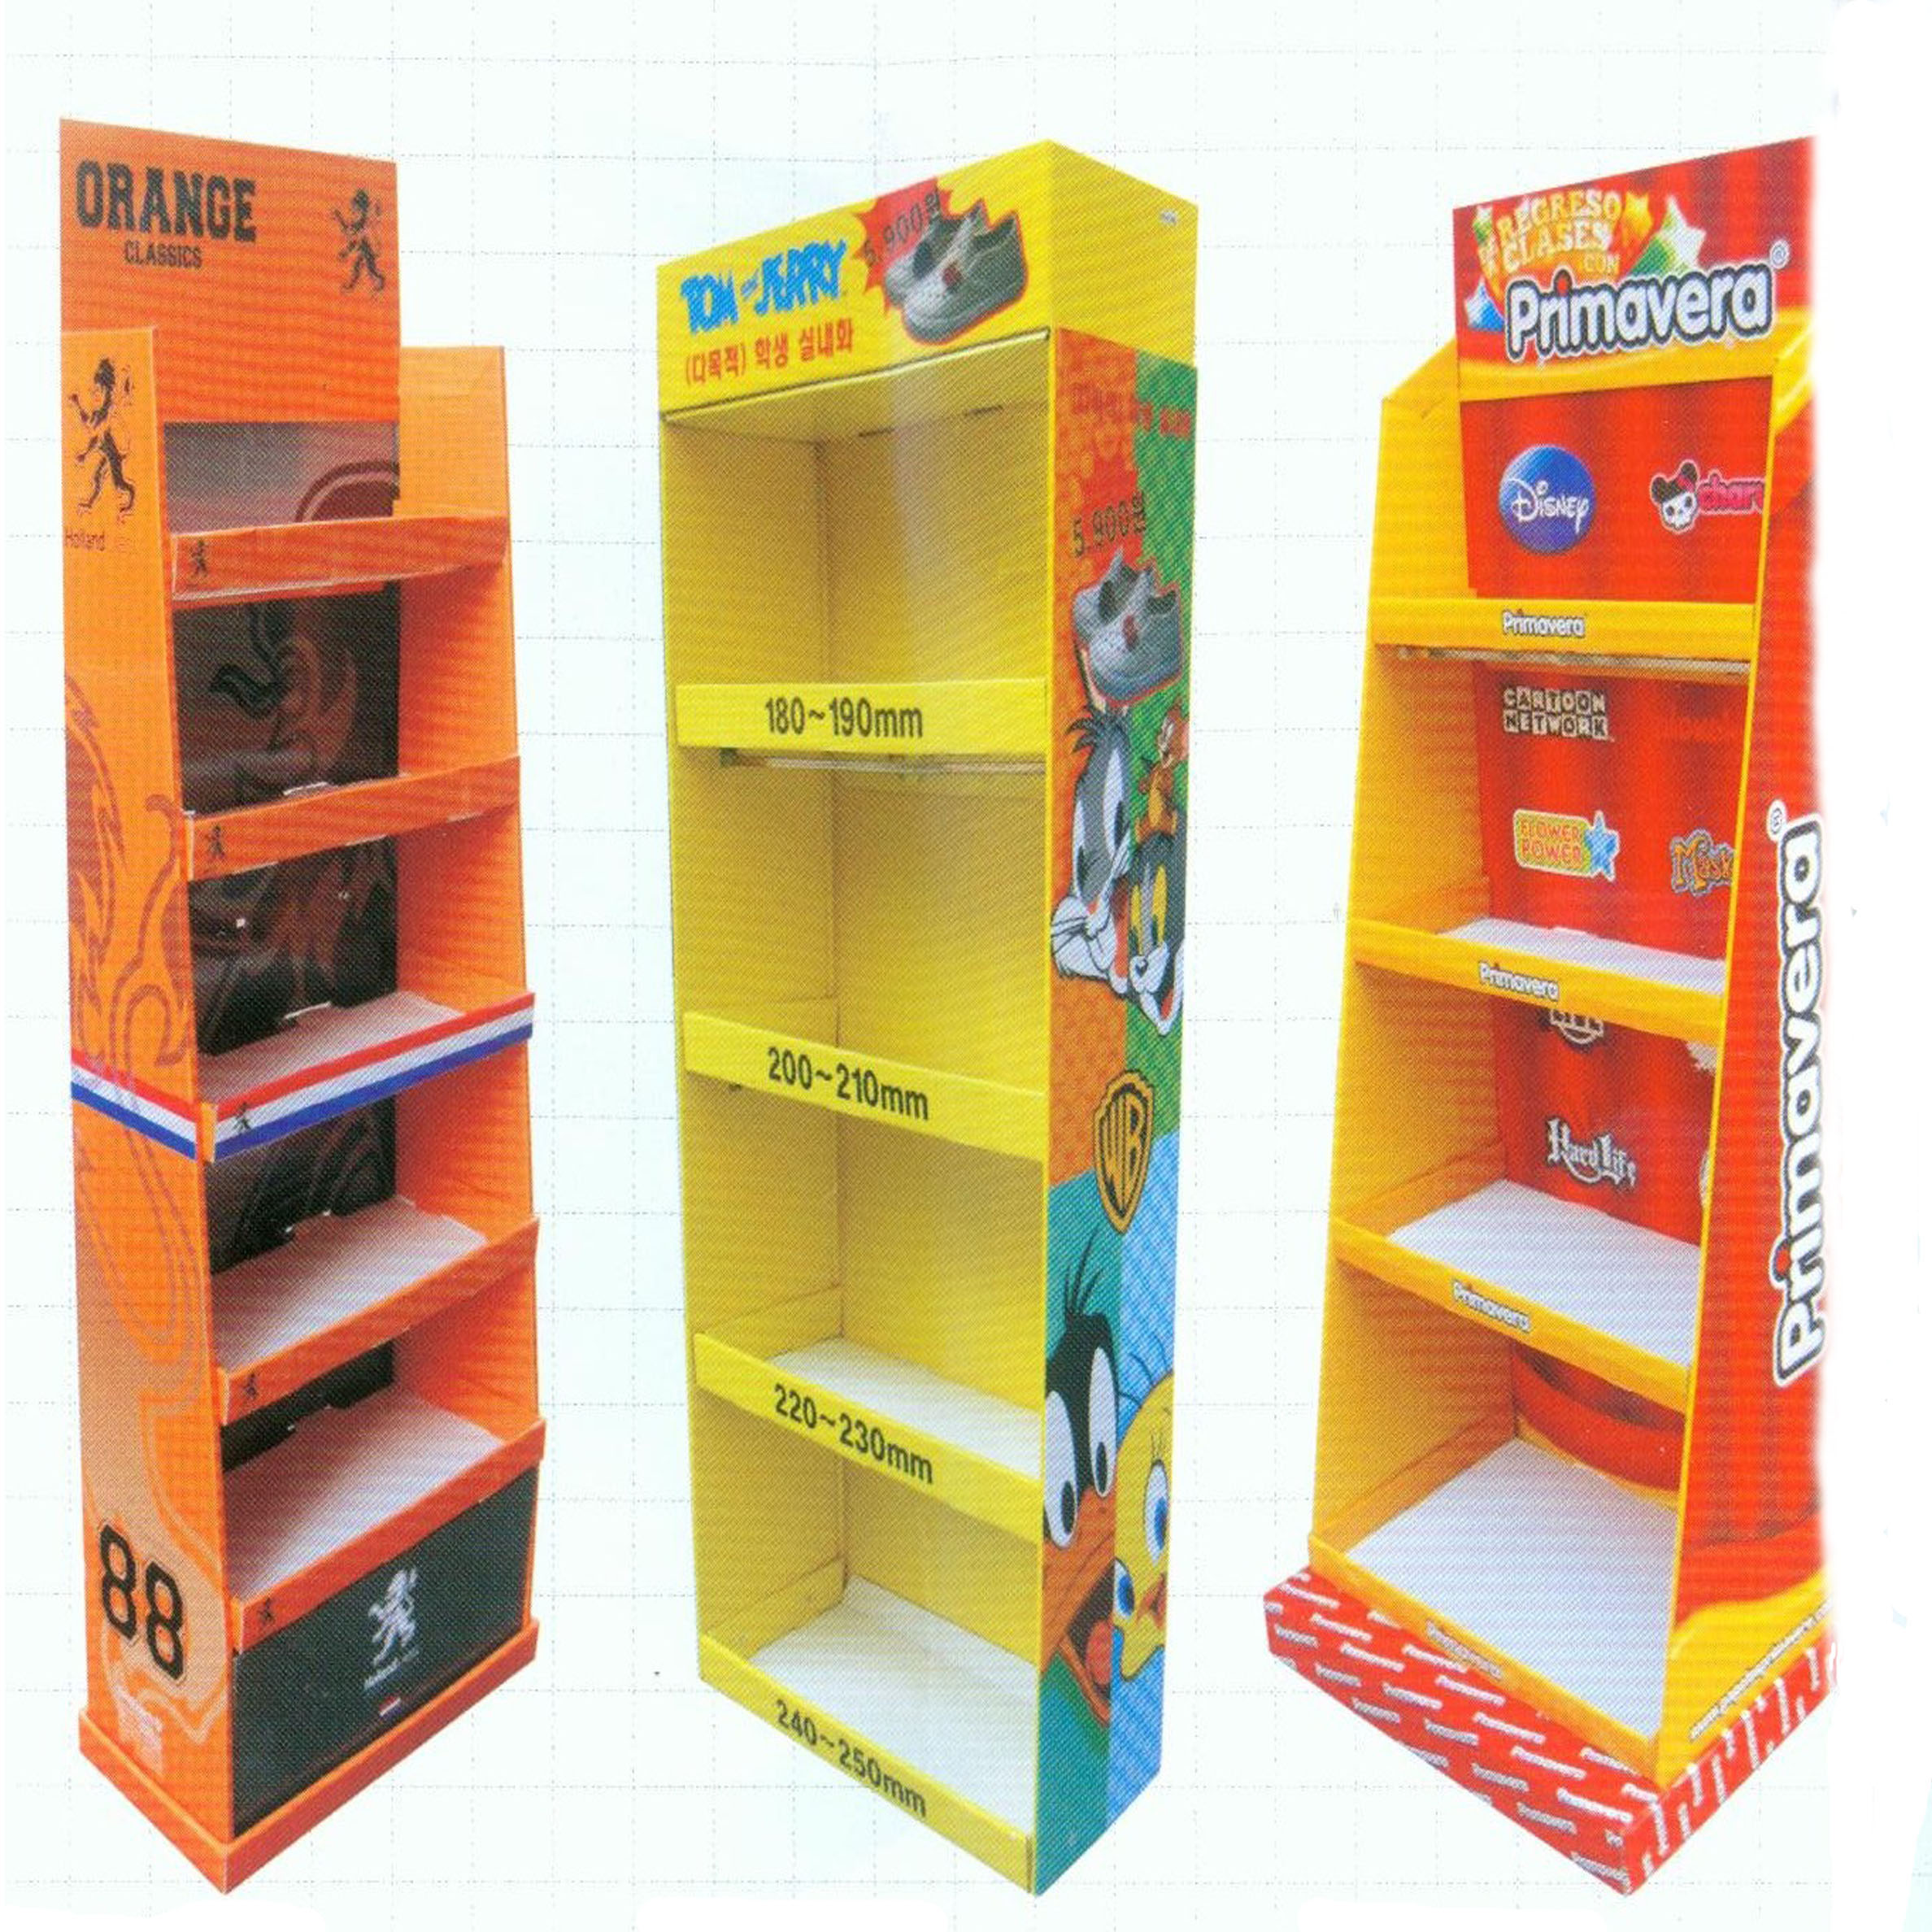 Corrugated Display Stands-Product Display Stands